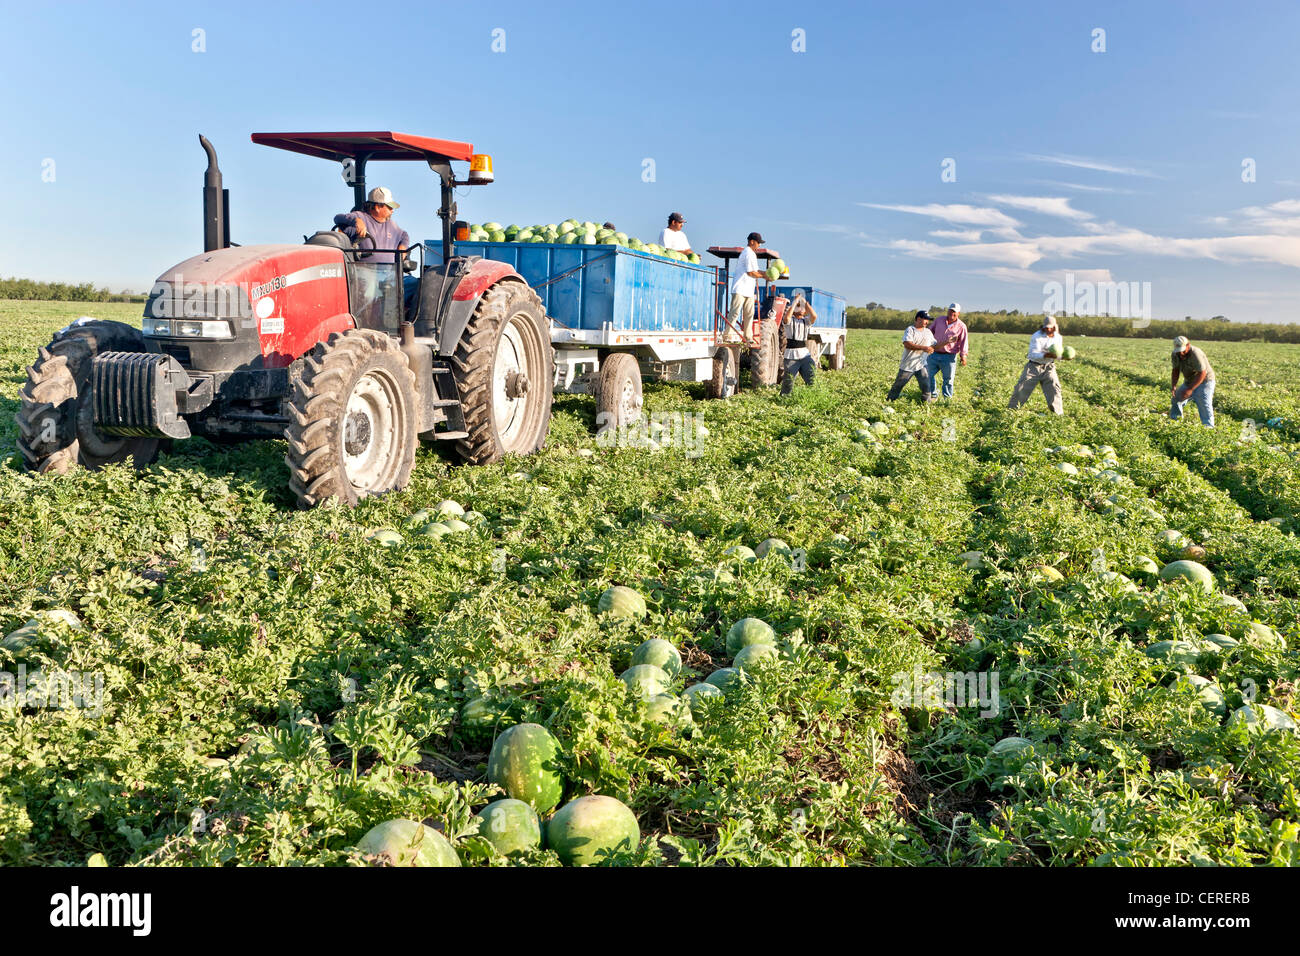 Watermelon harvest, workers loading trailer. - Stock Image